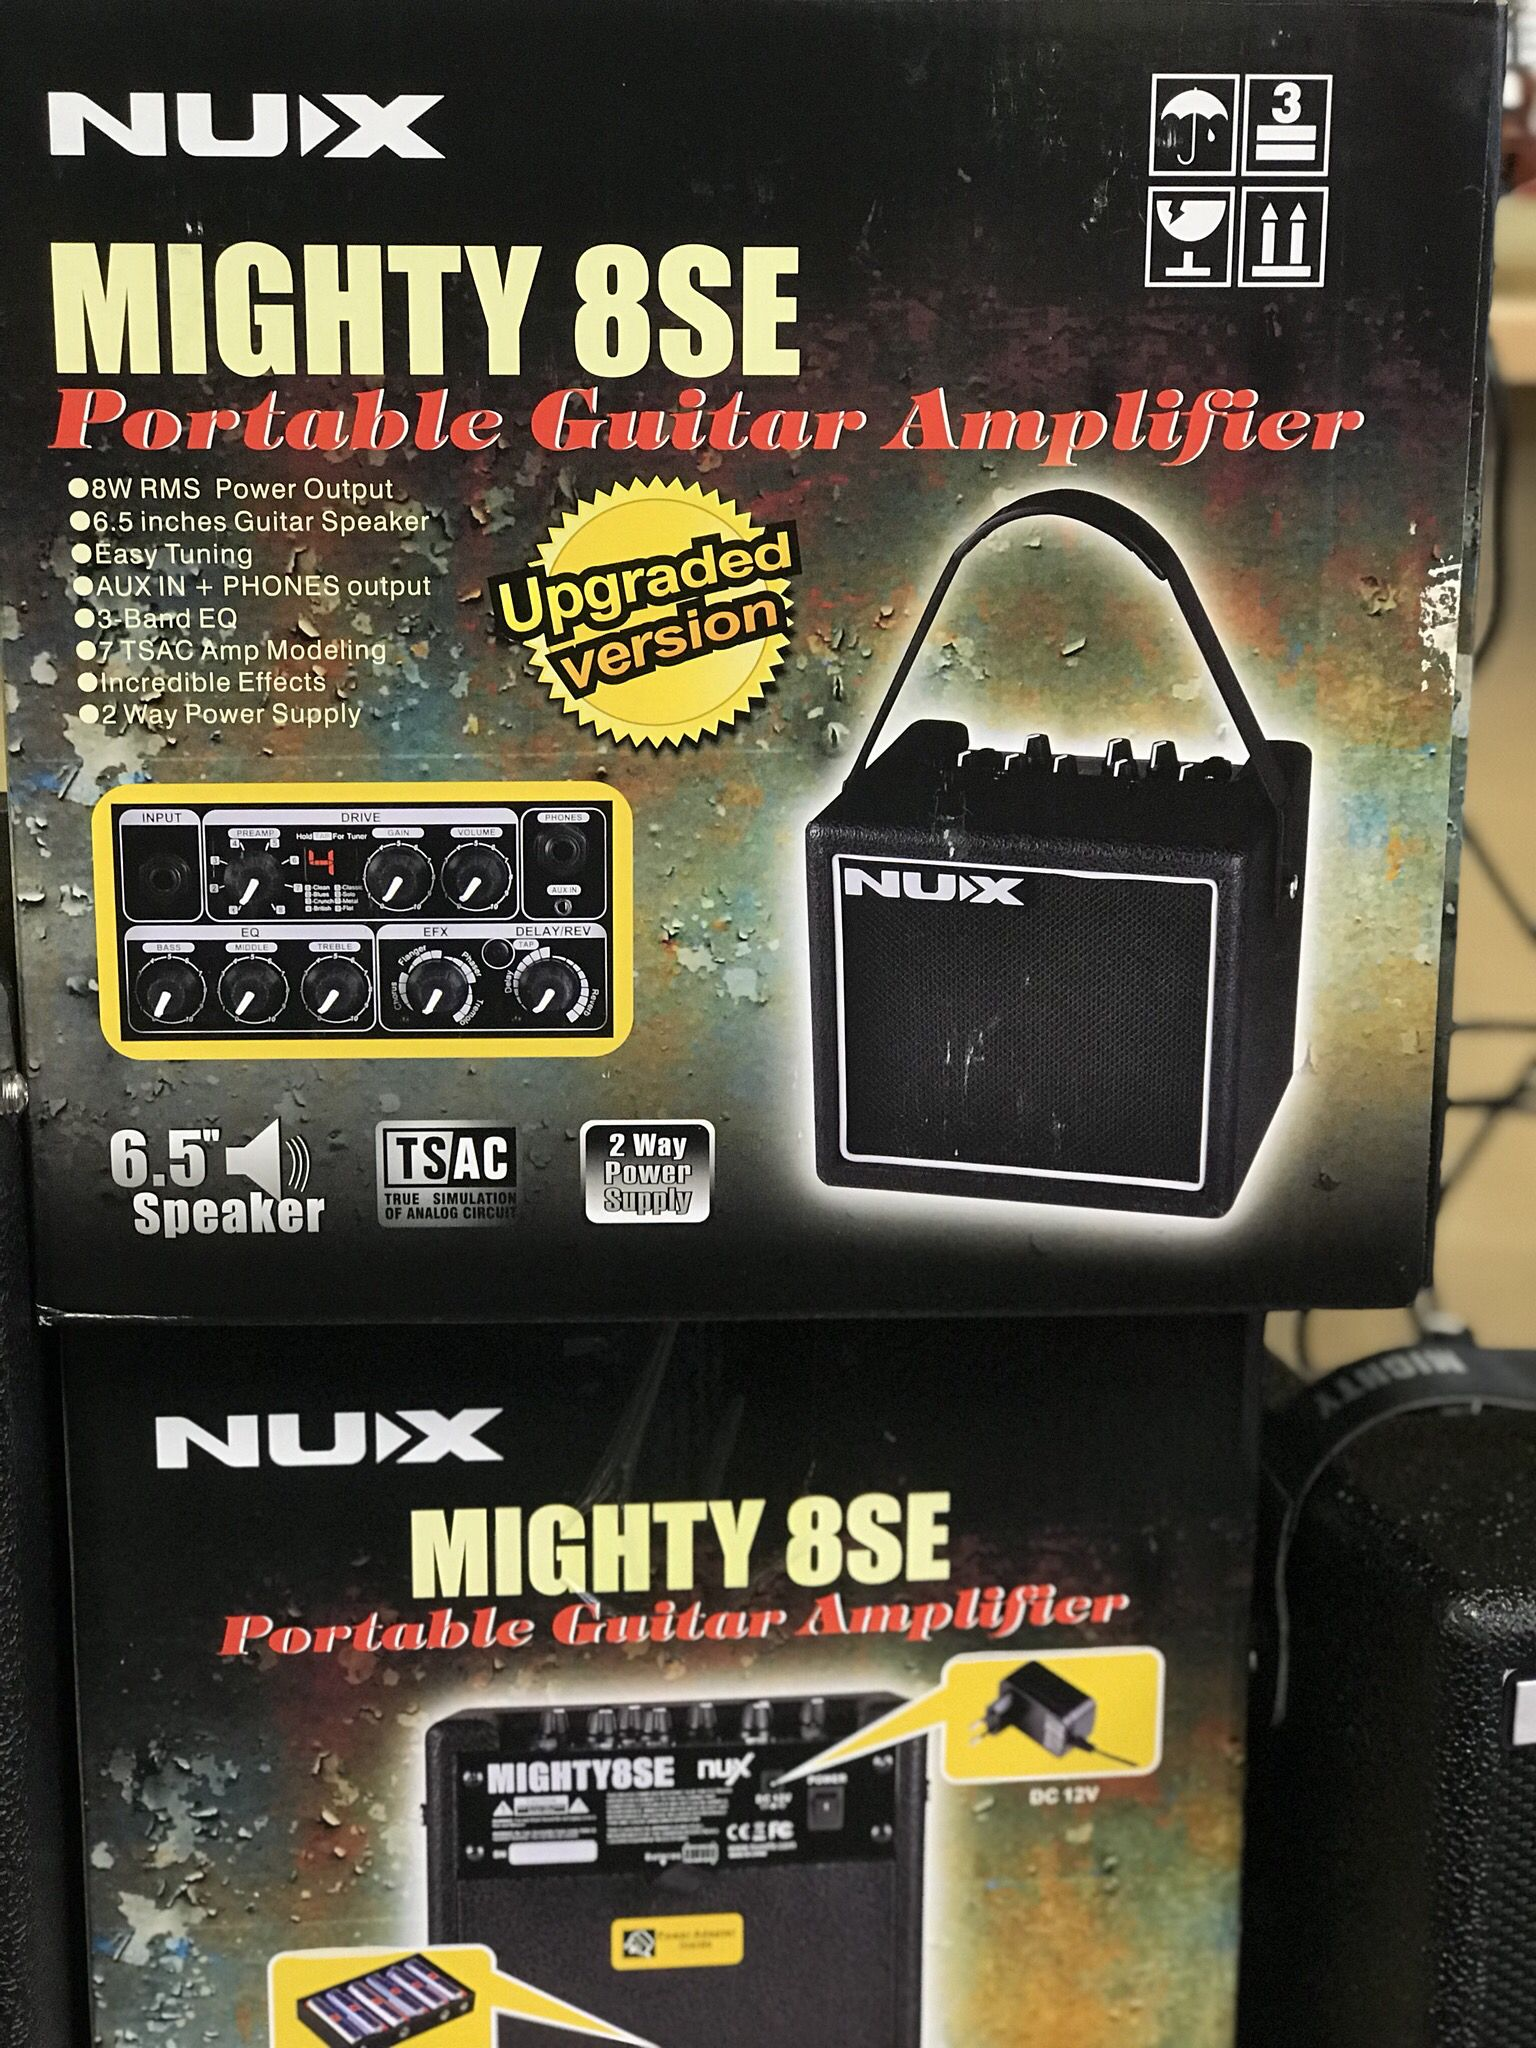 The NU-X Mighty 8SE is a battery powered modeling amp with